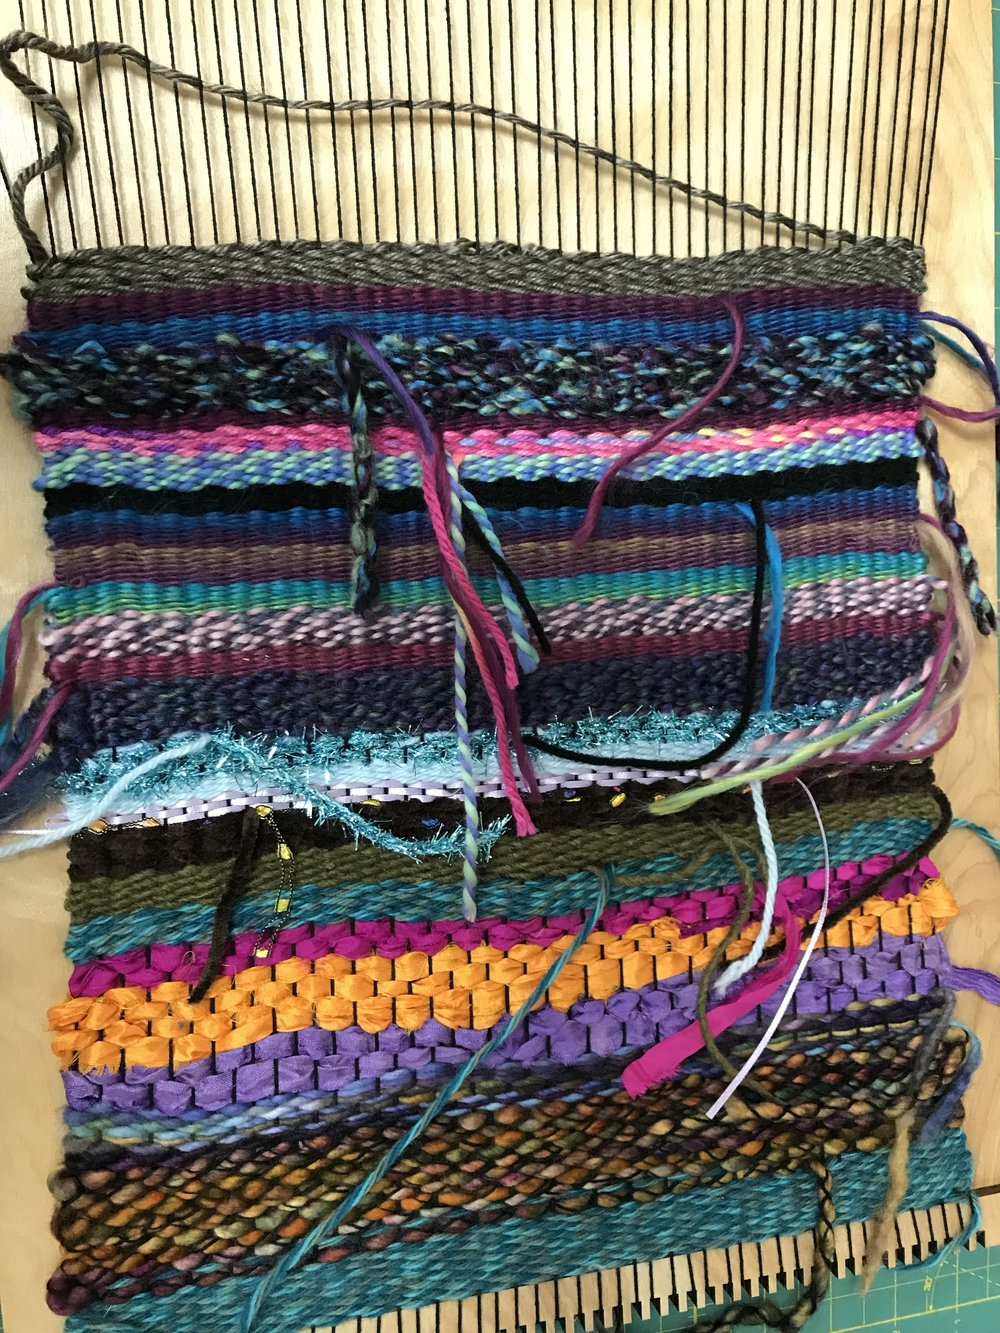 Photo credit and work by Lindsay F., Midwest Fiber Arts Trails 2018 workshop participant, completed on the placemat loom by Purl & Loop.